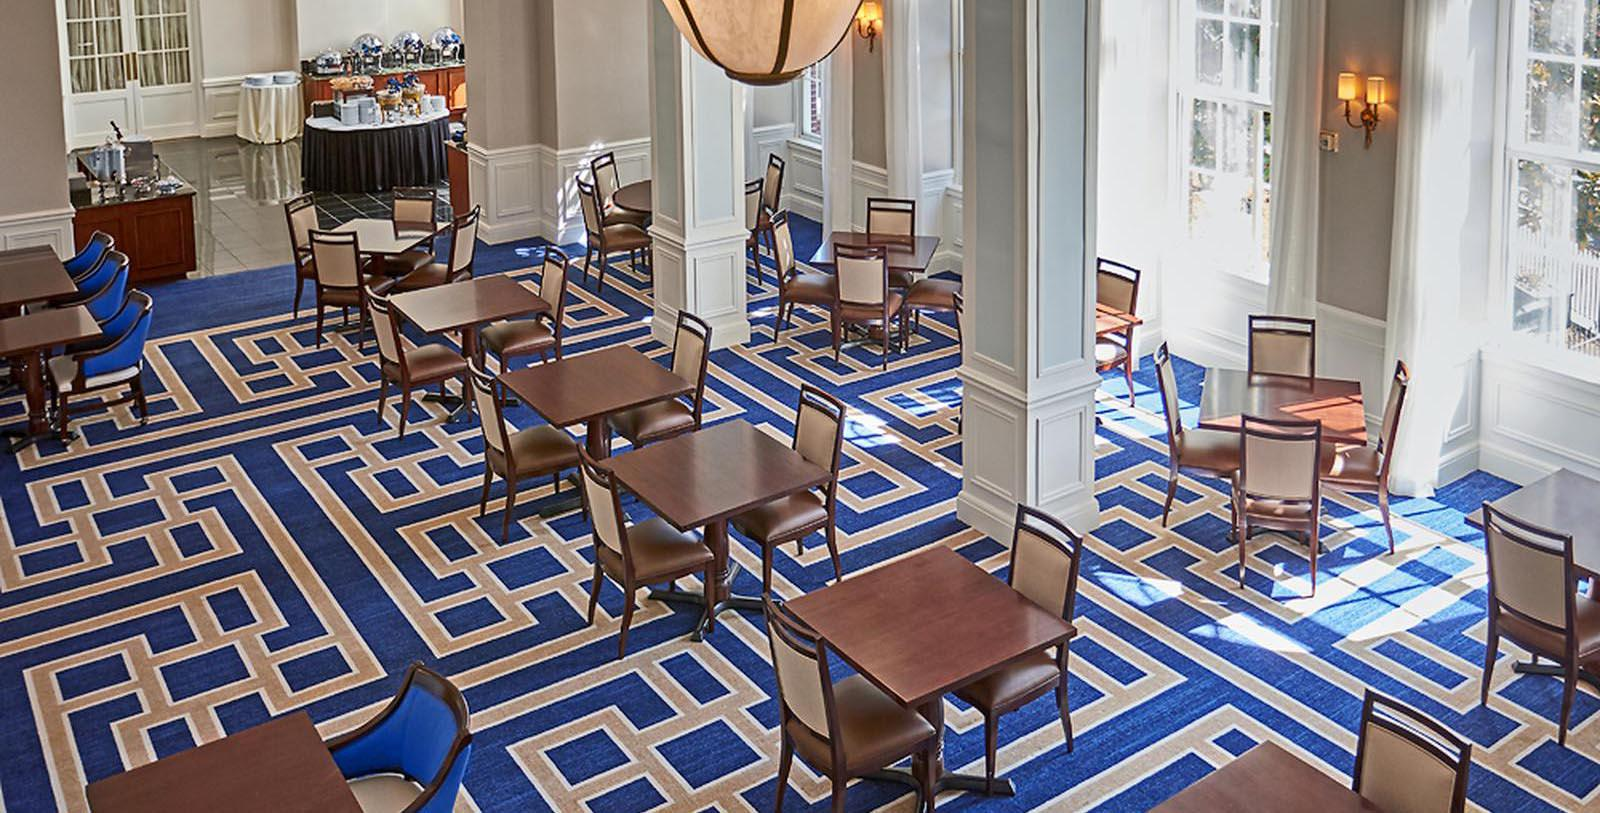 Image of Dining Area Stonewall Jackson Hotel & Conference Center, 1924, Member of Historic Hotels of America, in Staunton, Virginia, Taste